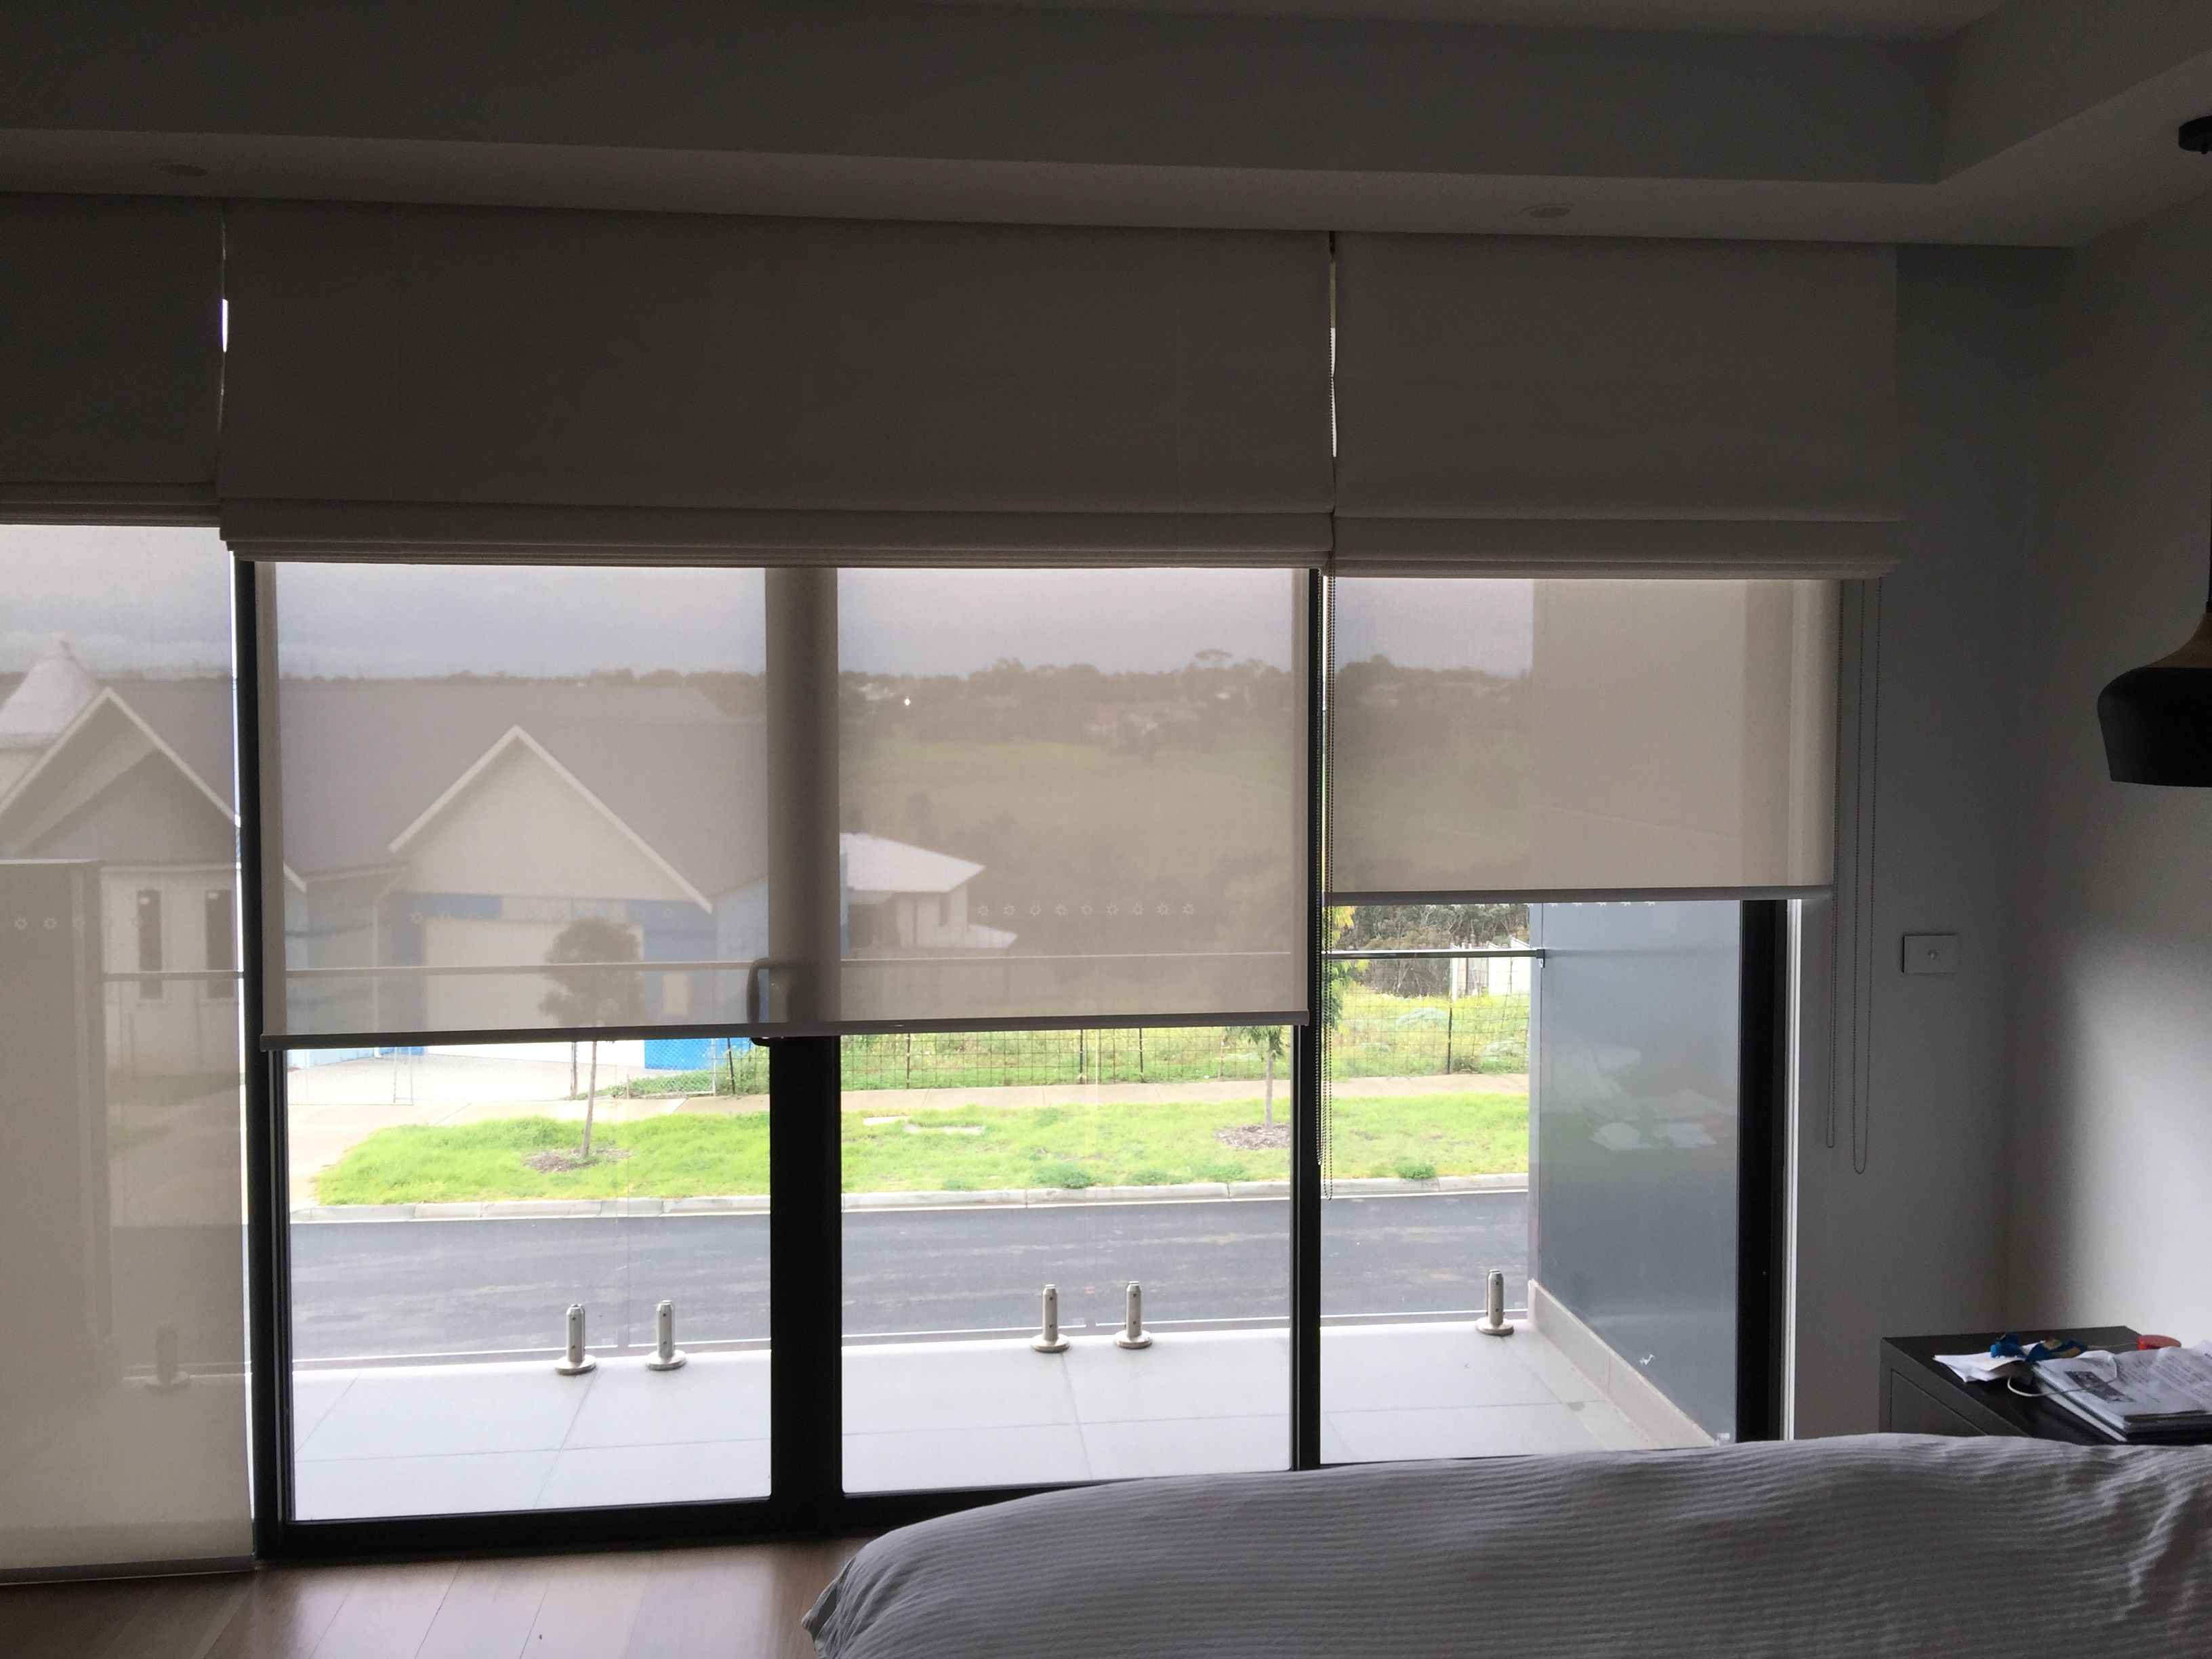 Pin by Alfresco Blinds Co on Roller Blinds Roller blinds